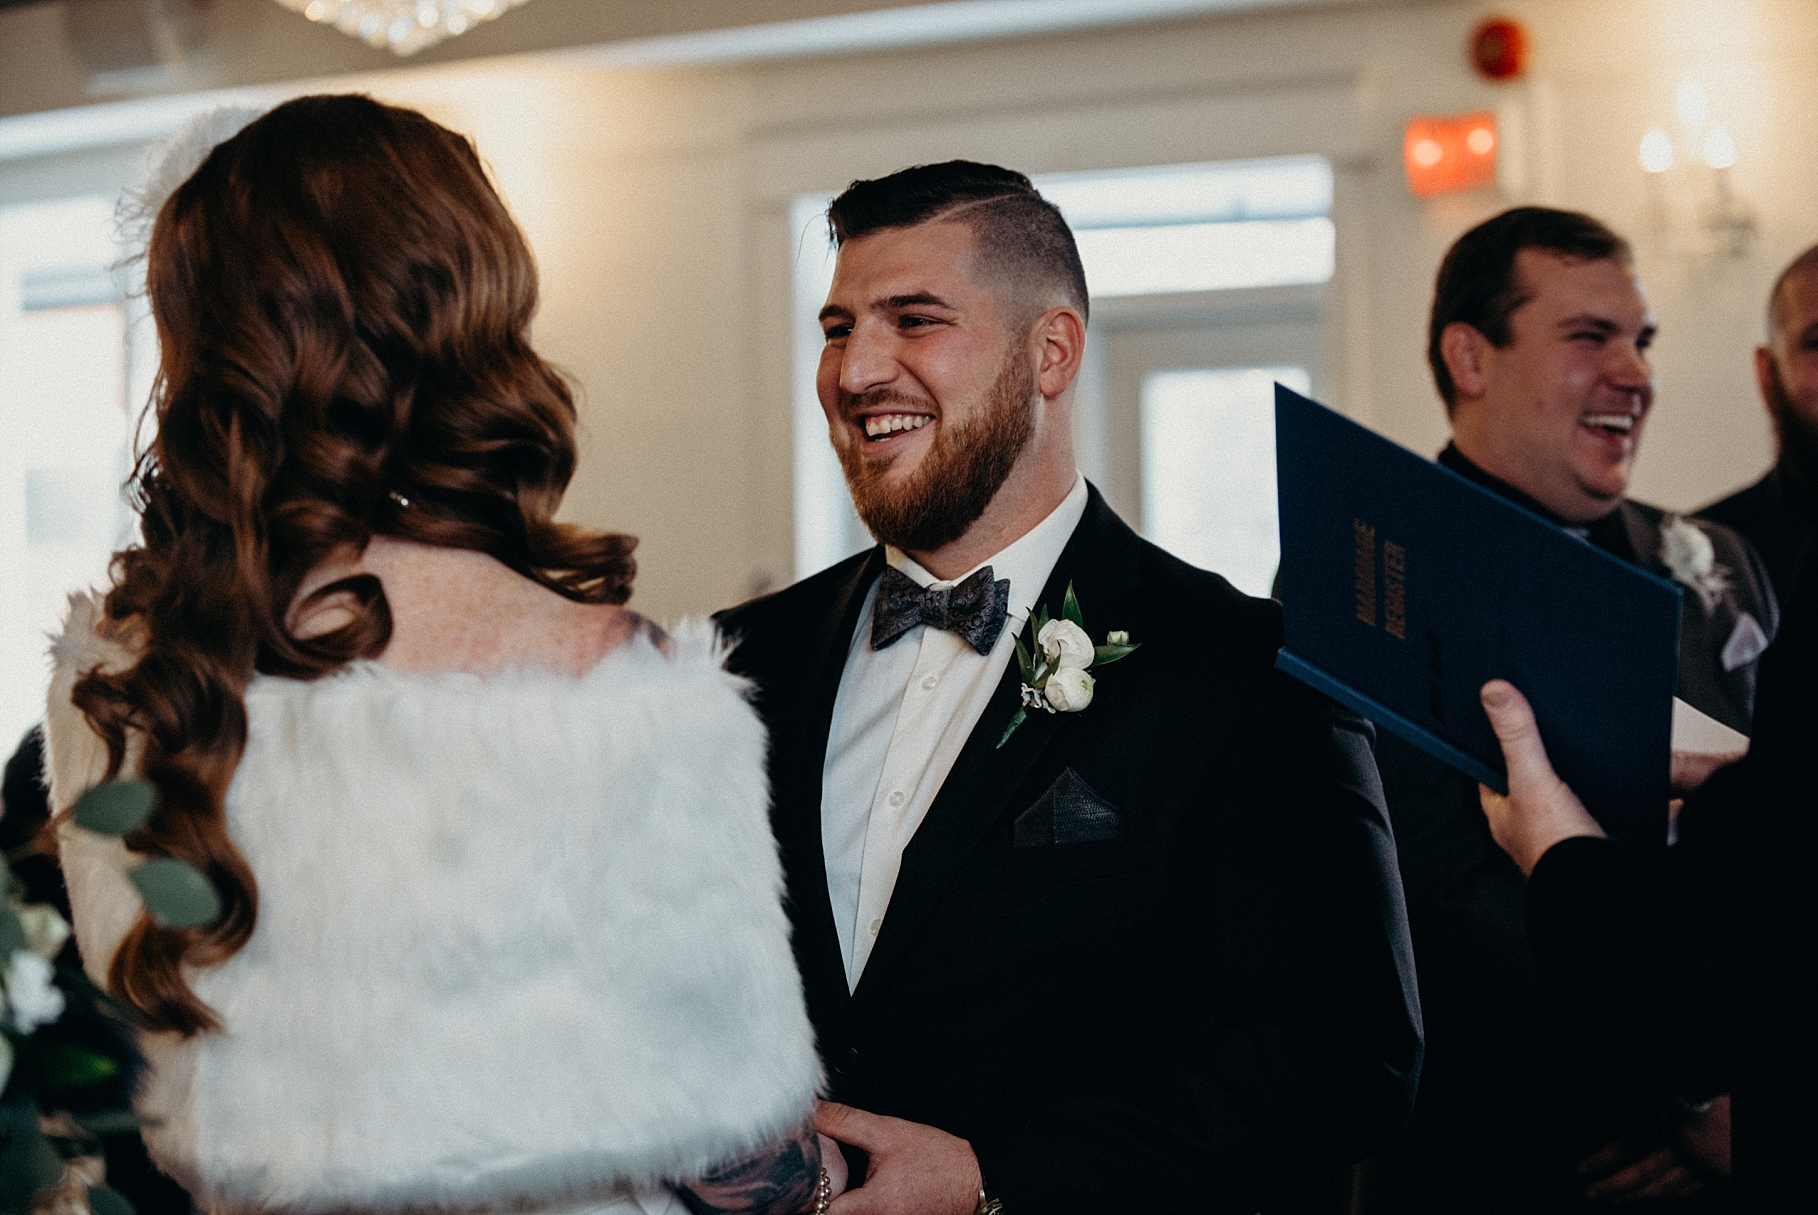 Orchard View Wedding by Mocha Tree Studios Ottawa Wedding and Engagement Photographer and Videographer Dark Moody Intimate Authentic Modern Romantic Cinematic Best Candid 14